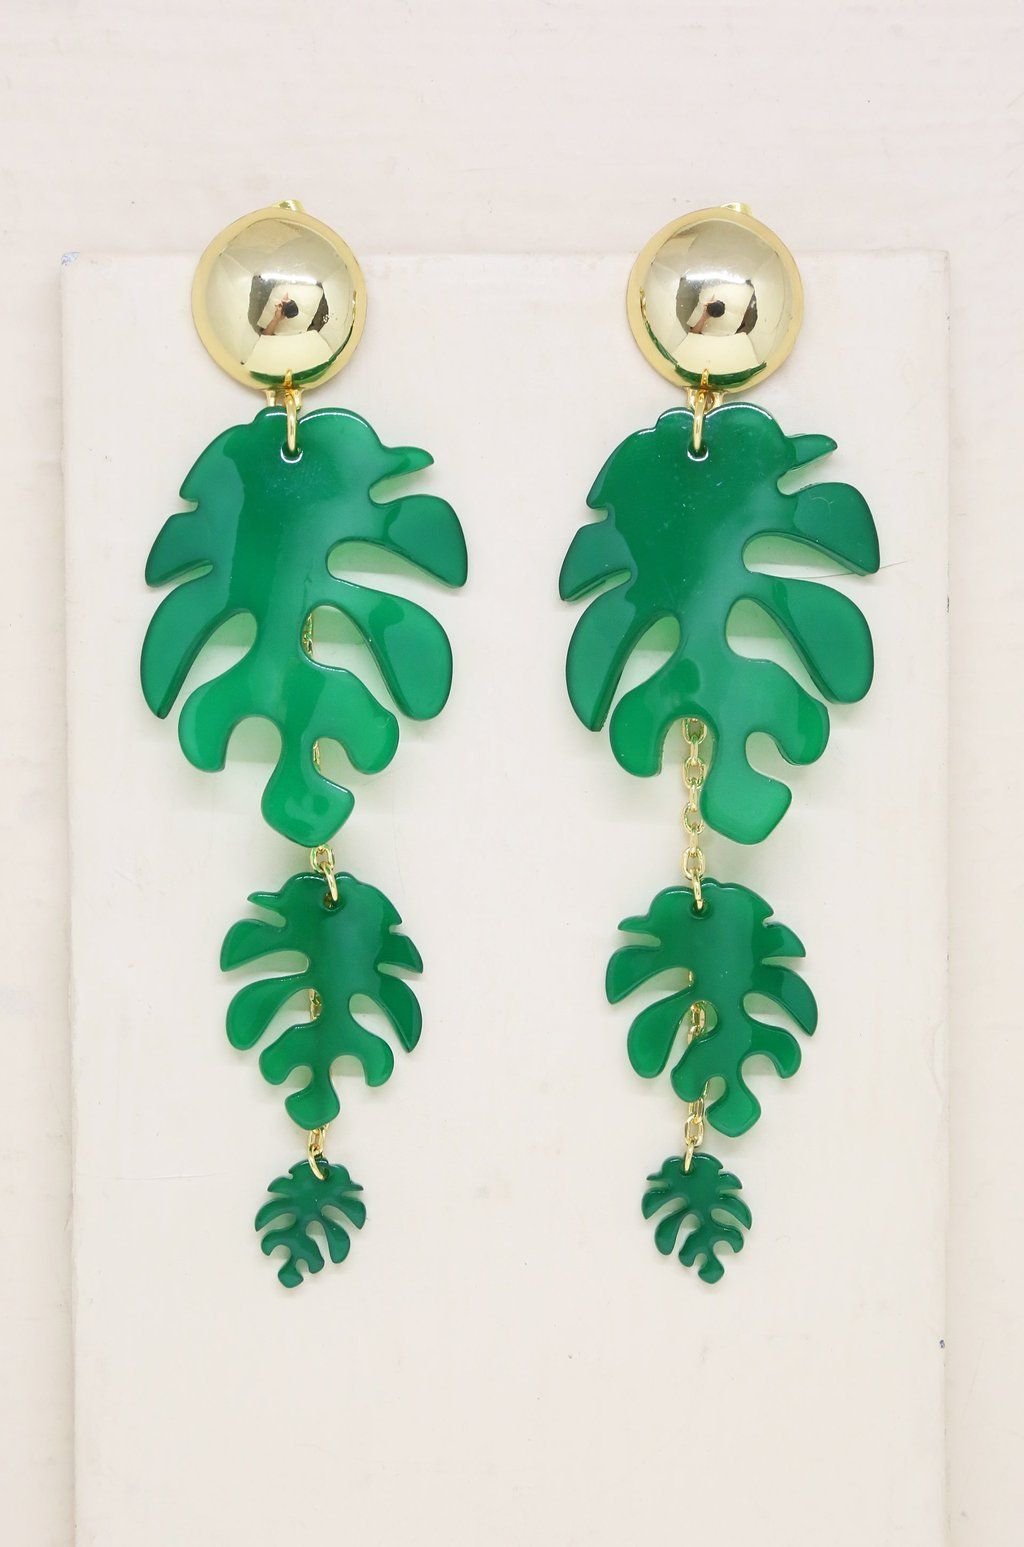 Pin by Studio Cosmica on Palm tree